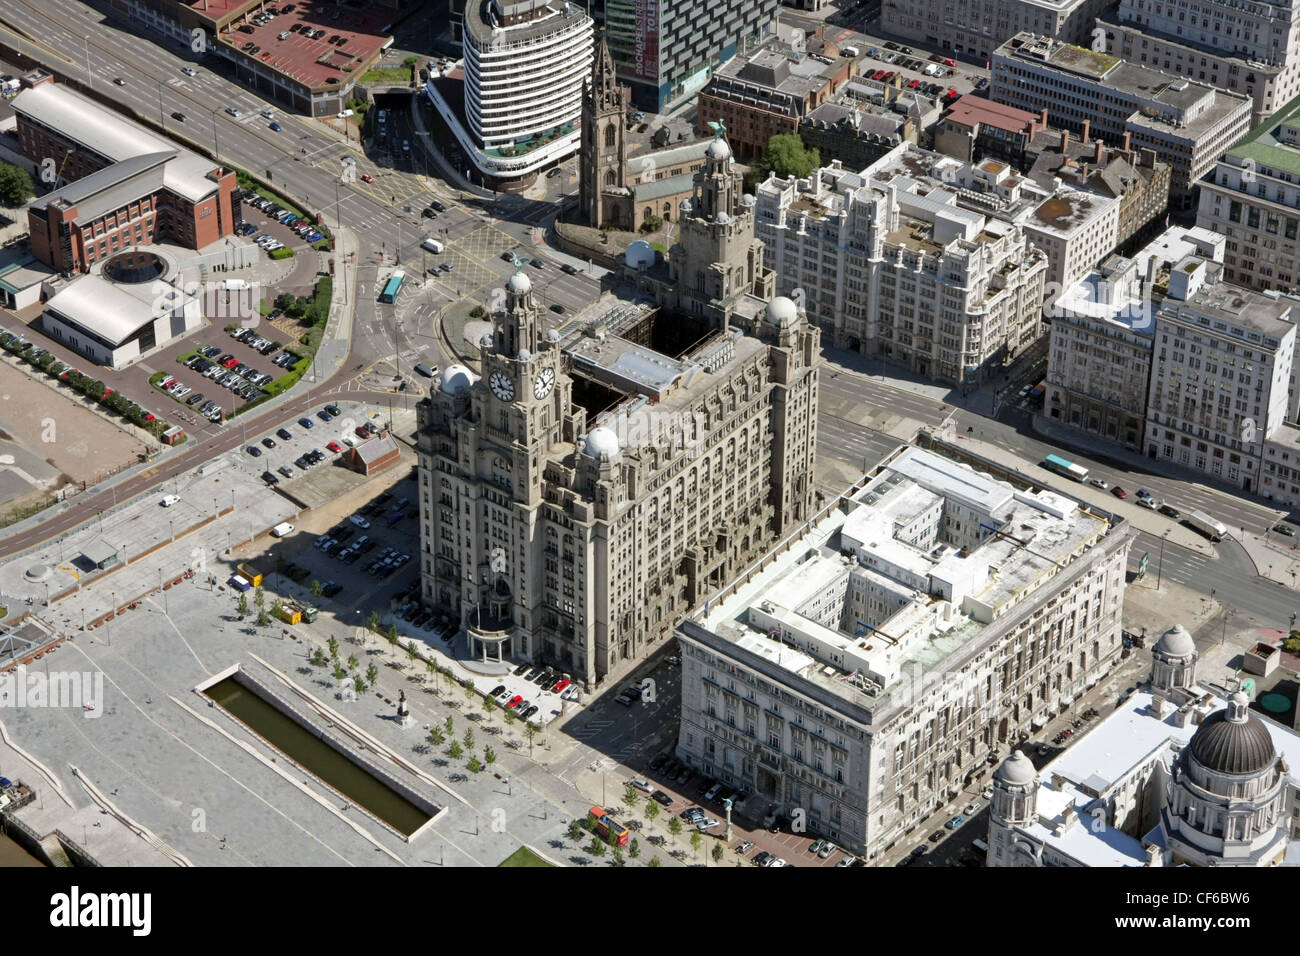 aerial view of Liverpool waterfront with Liver building - Stock Image